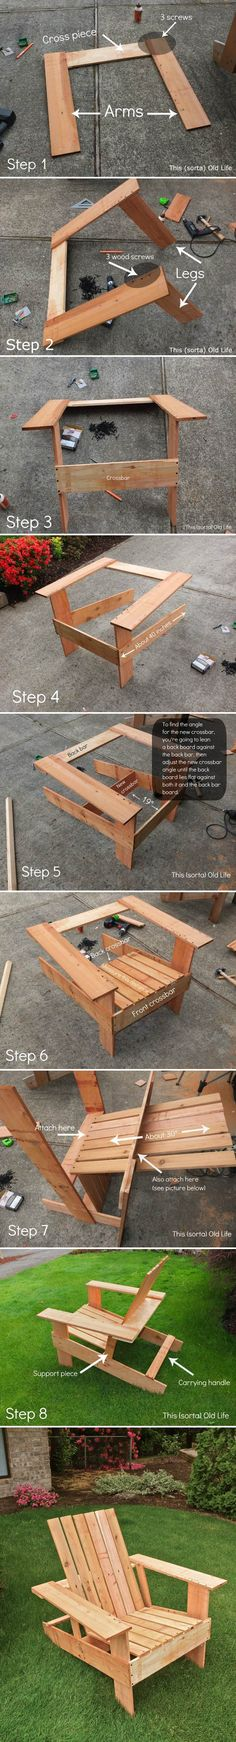 These Adirondack chair plans will help you build an outdoor furniture set that becomes the centerpiece of your backyard. It's a good thing that so many plastic patio chairs are designed to stack, and the aluminum ones fold up flat. Pallet Crafts, Pallet Projects, Wood Crafts, Woodworking Projects, Diy And Crafts, Diy Pallet, Woodworking Furniture, Pallet Furniture, Furniture Projects